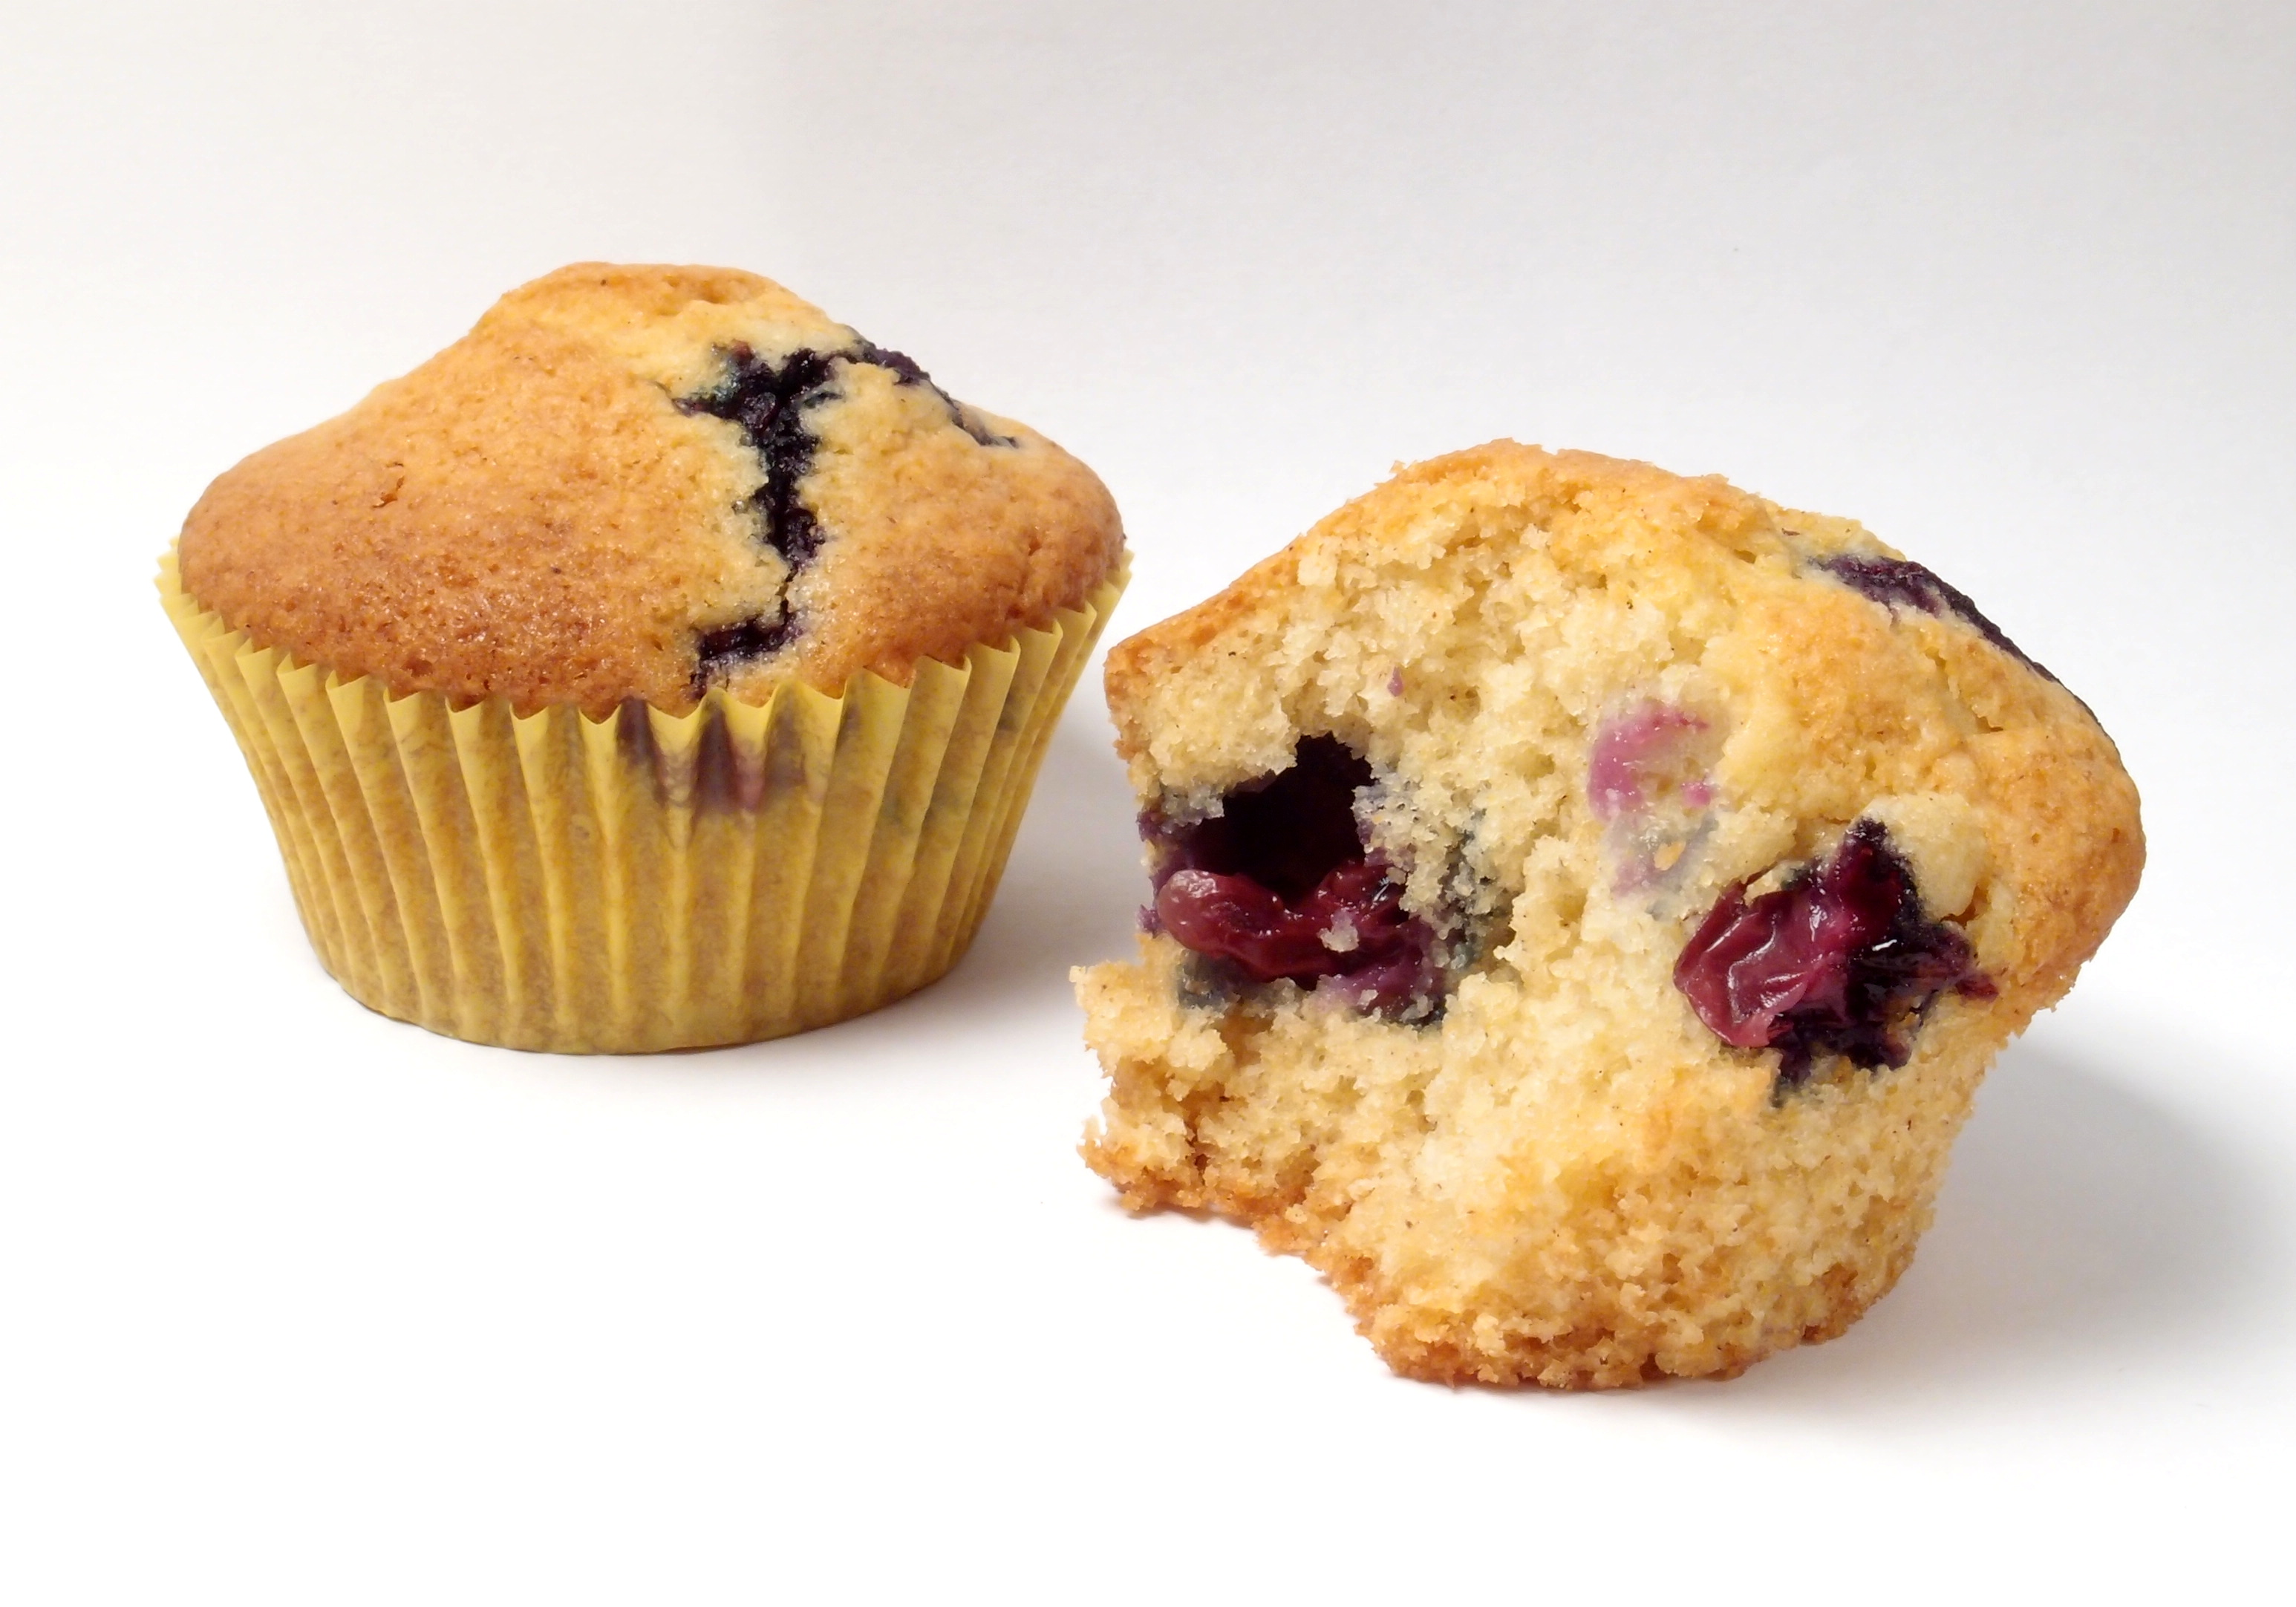 File:Blueberry Muffins, Whole And Partial.jpg